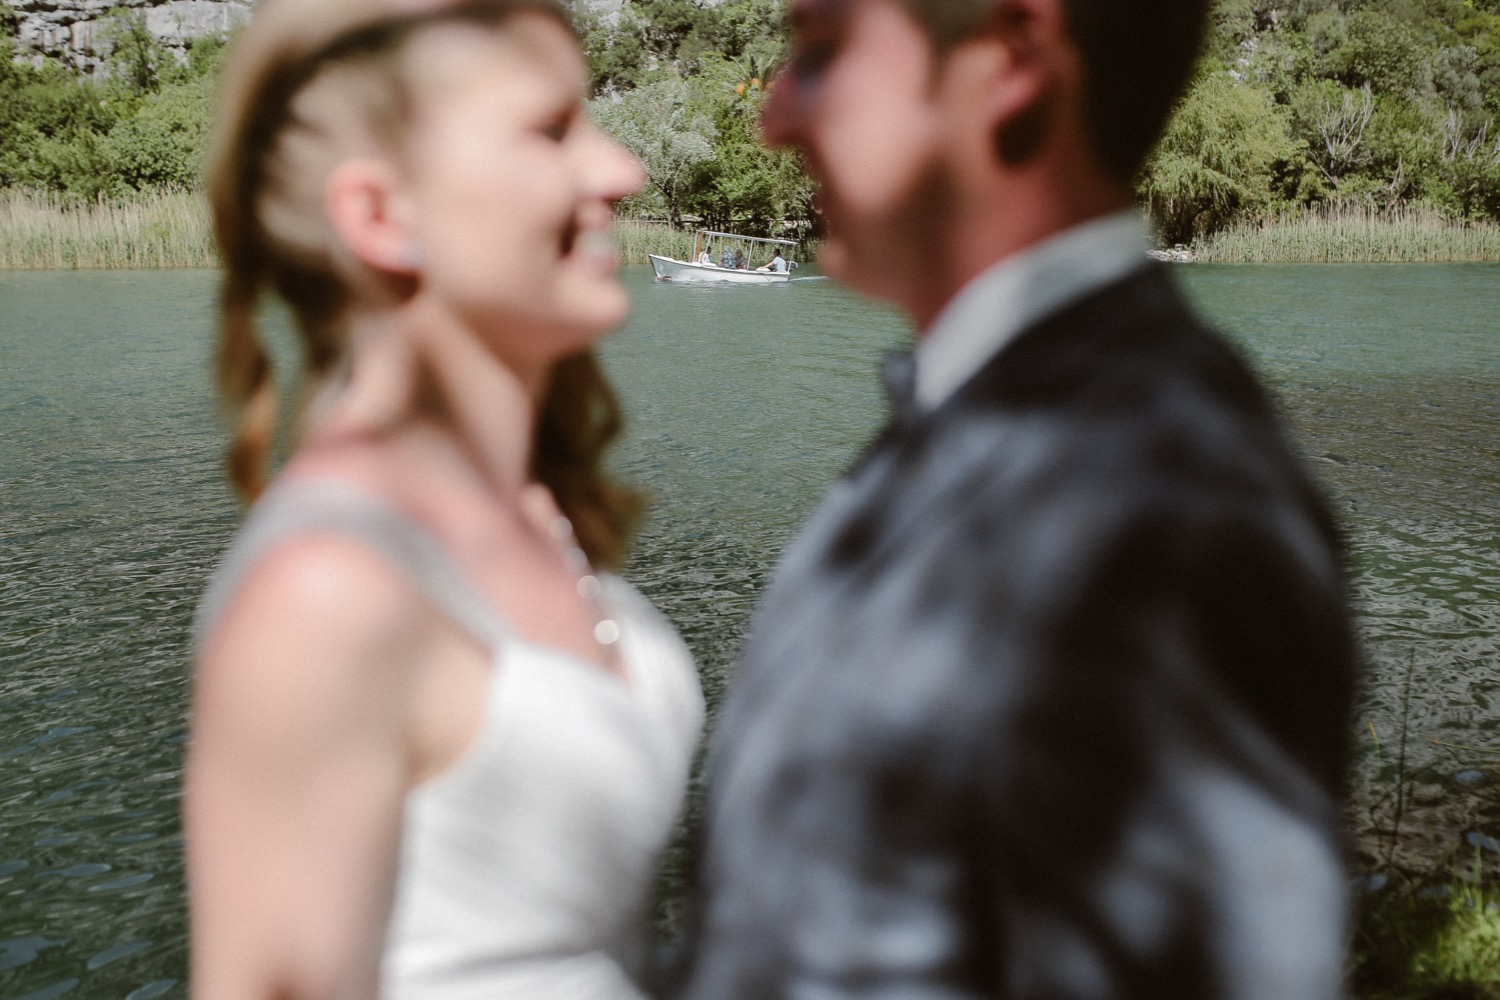 Croatia beach elopement hilke thomas love and ventures photography 77 | Croatia Elopement Photographer and Videographer